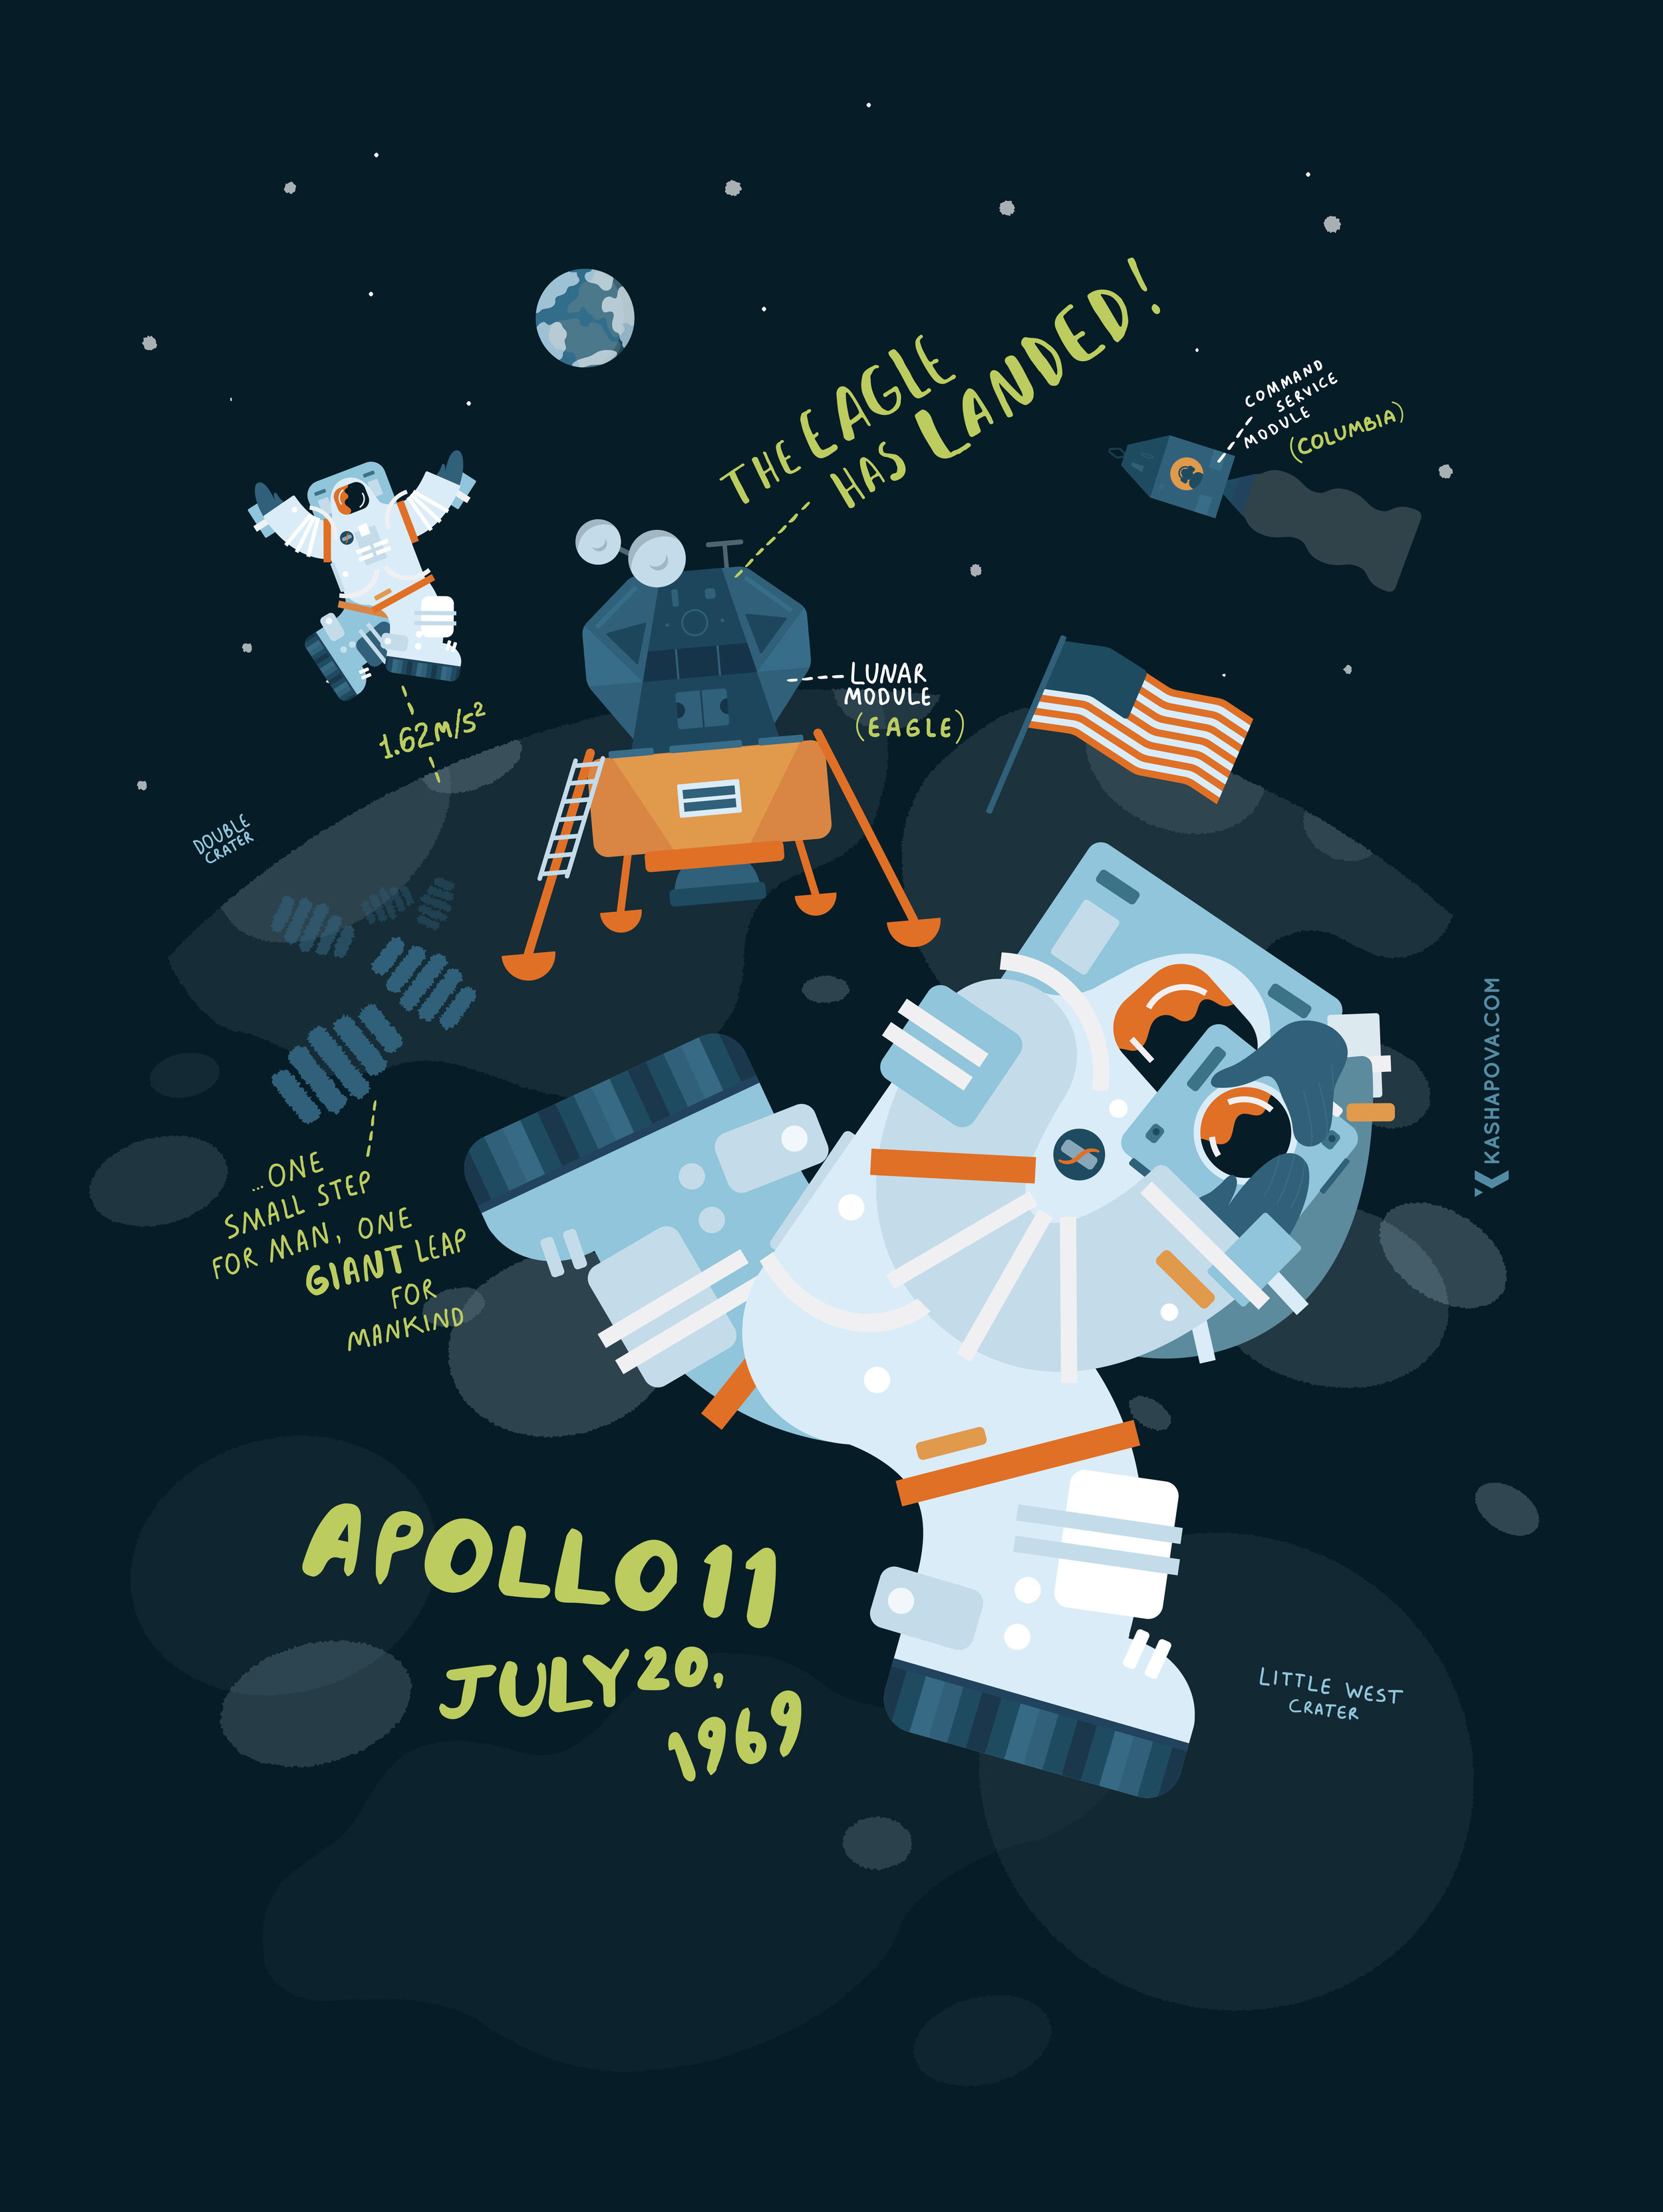 "Apollo 11 Anniversary - Here is an illustration I came up with to celebrate the upcoming 50th anniversary of the Apollo 11 crew landing on the Moon on July 20th, 1969.I wanted to portray a few key elements from those memorable hours that our astronauts spent on the lunar surface: the Lunar Module's landing site (the famous ""The Eagle has landed!"" moment), the first steps, playing around with the lunar gravity, exploring the area and taking photos, the planted flag, ""Columbia"" orbiting the Moon, and last (but definitely not least) the view of the Earth (at that point of time the astronauts could see the bit with Africa and Eurasia).If you'd like your own copy, I've added some products to my Society6, Design by Humans and RedBubble stores. Here are few of my faves:Biker tank & Tote bag from Society6Sweatshirts and Hoodies from Design by HumansPoster & Notebooks from Society6"